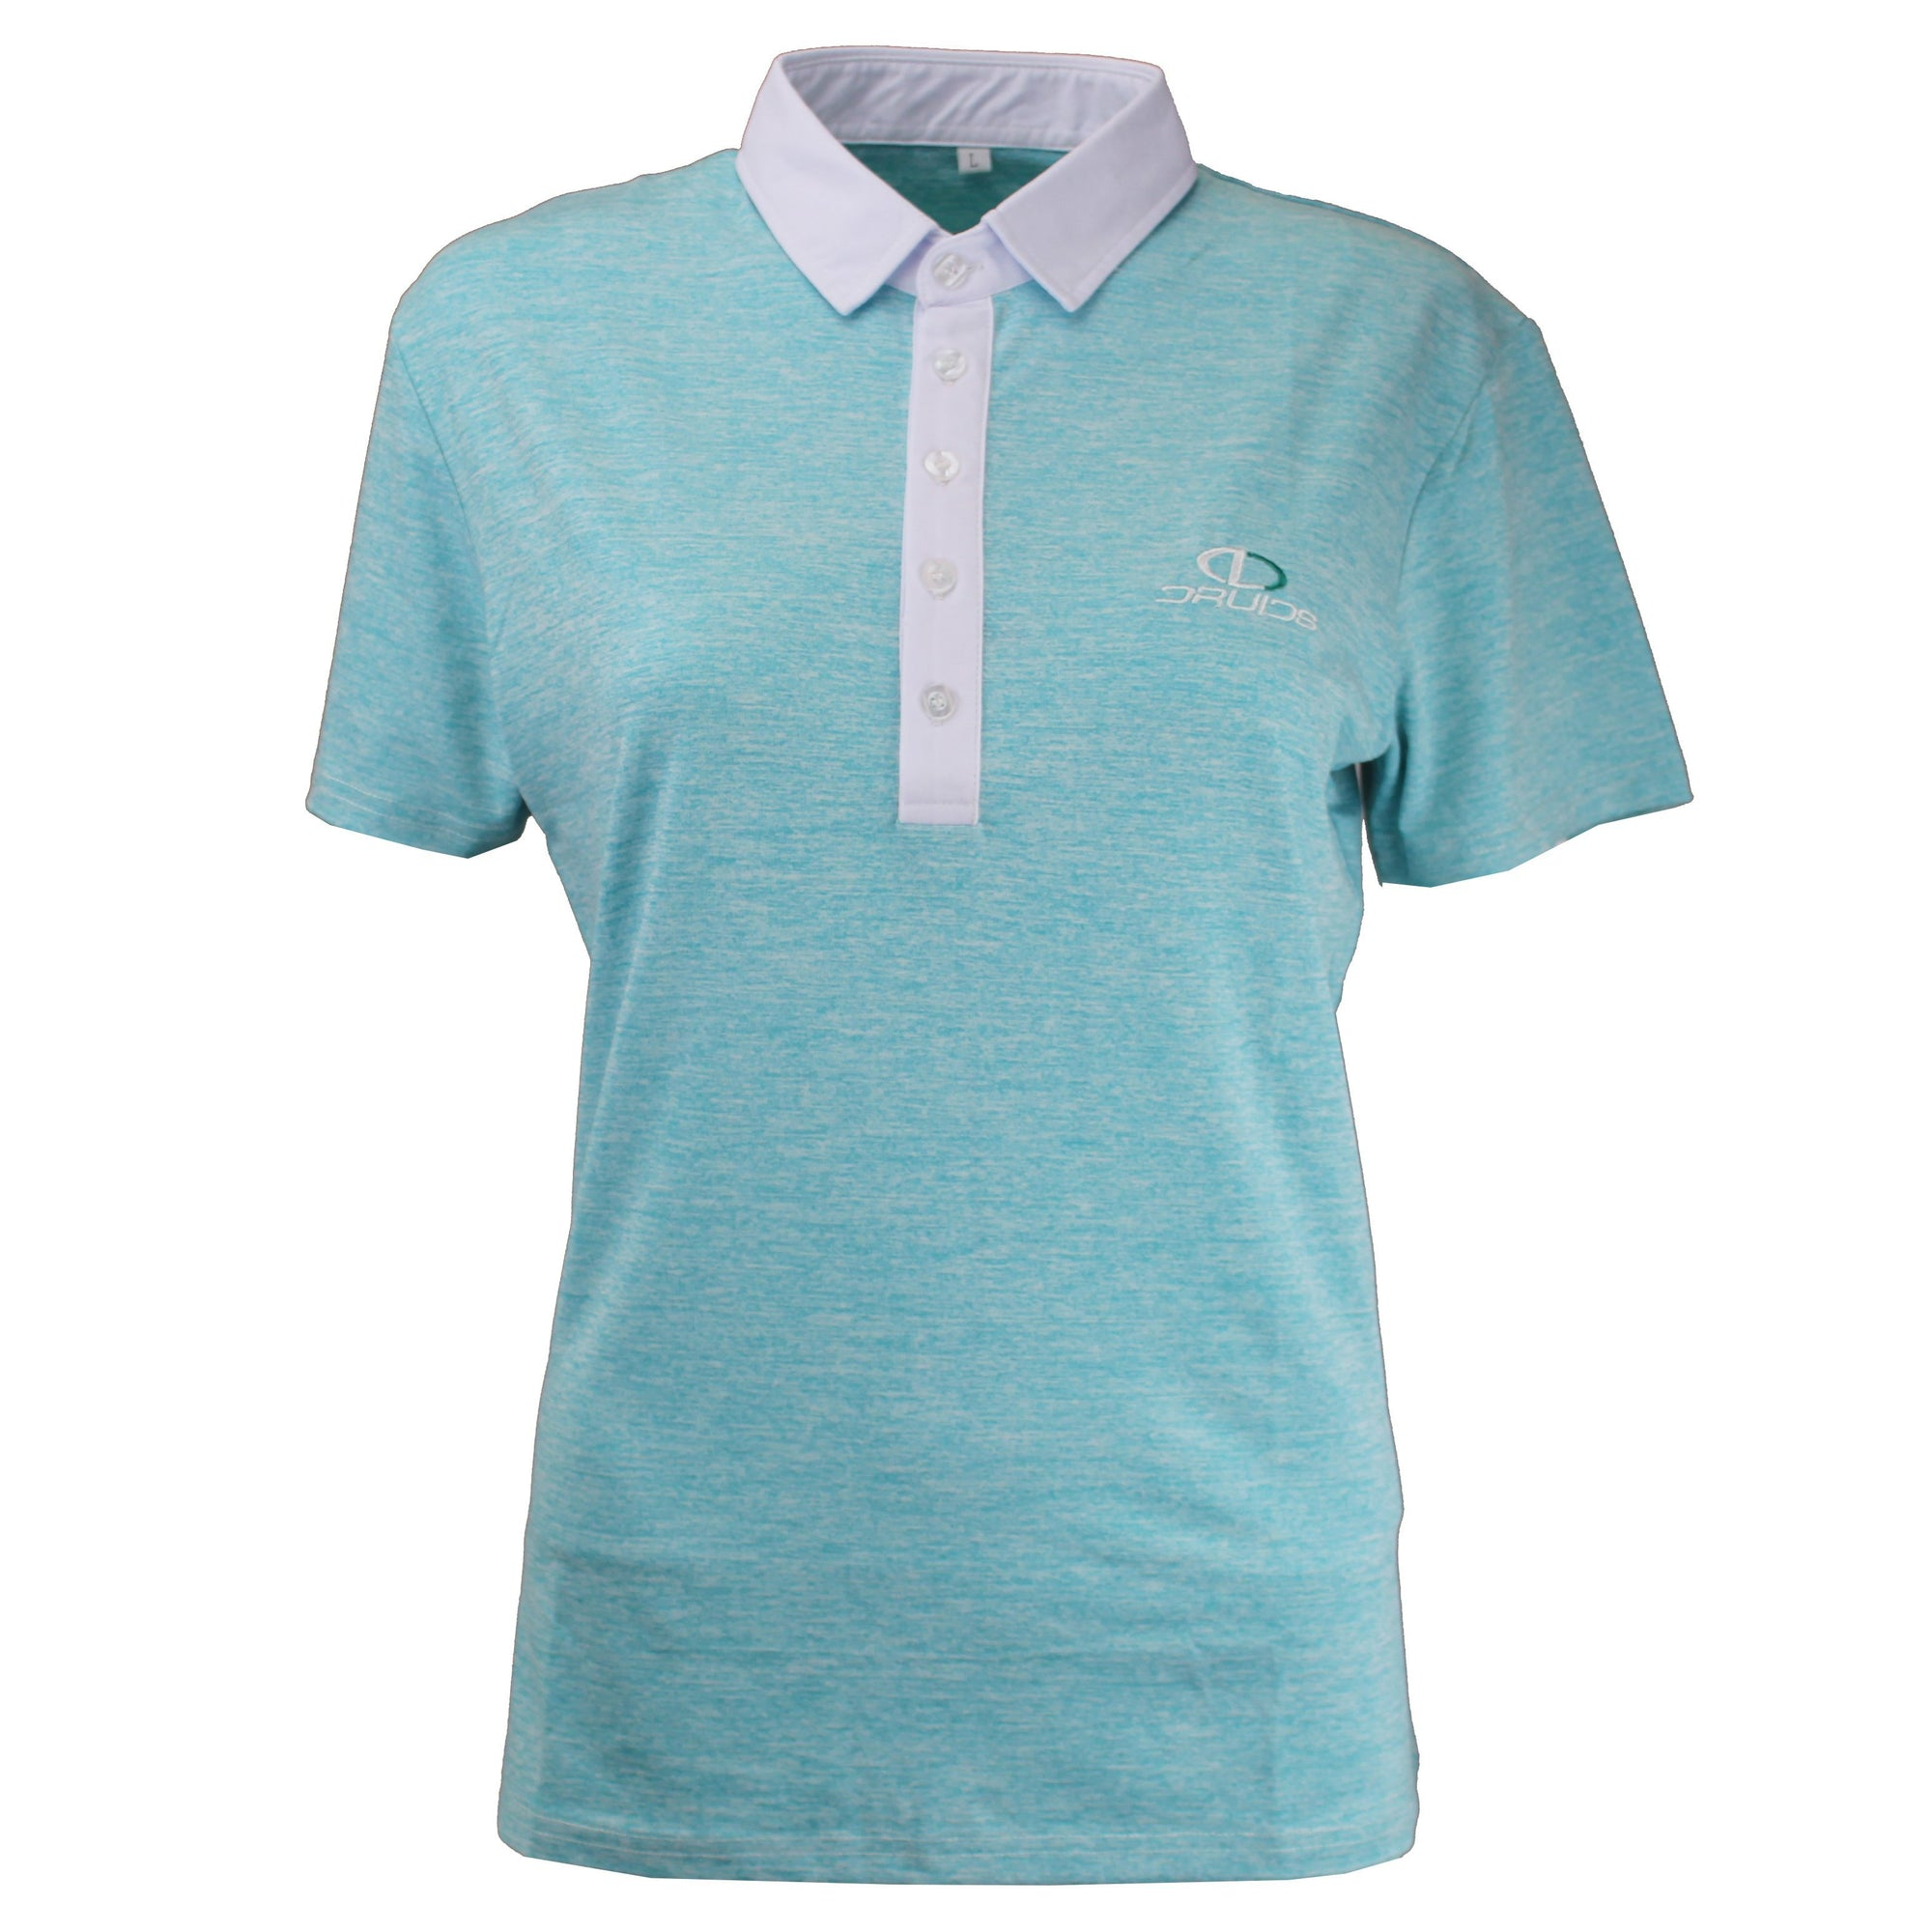 Druids Golf - Ladies Speckled Polo 2018 (Teal)